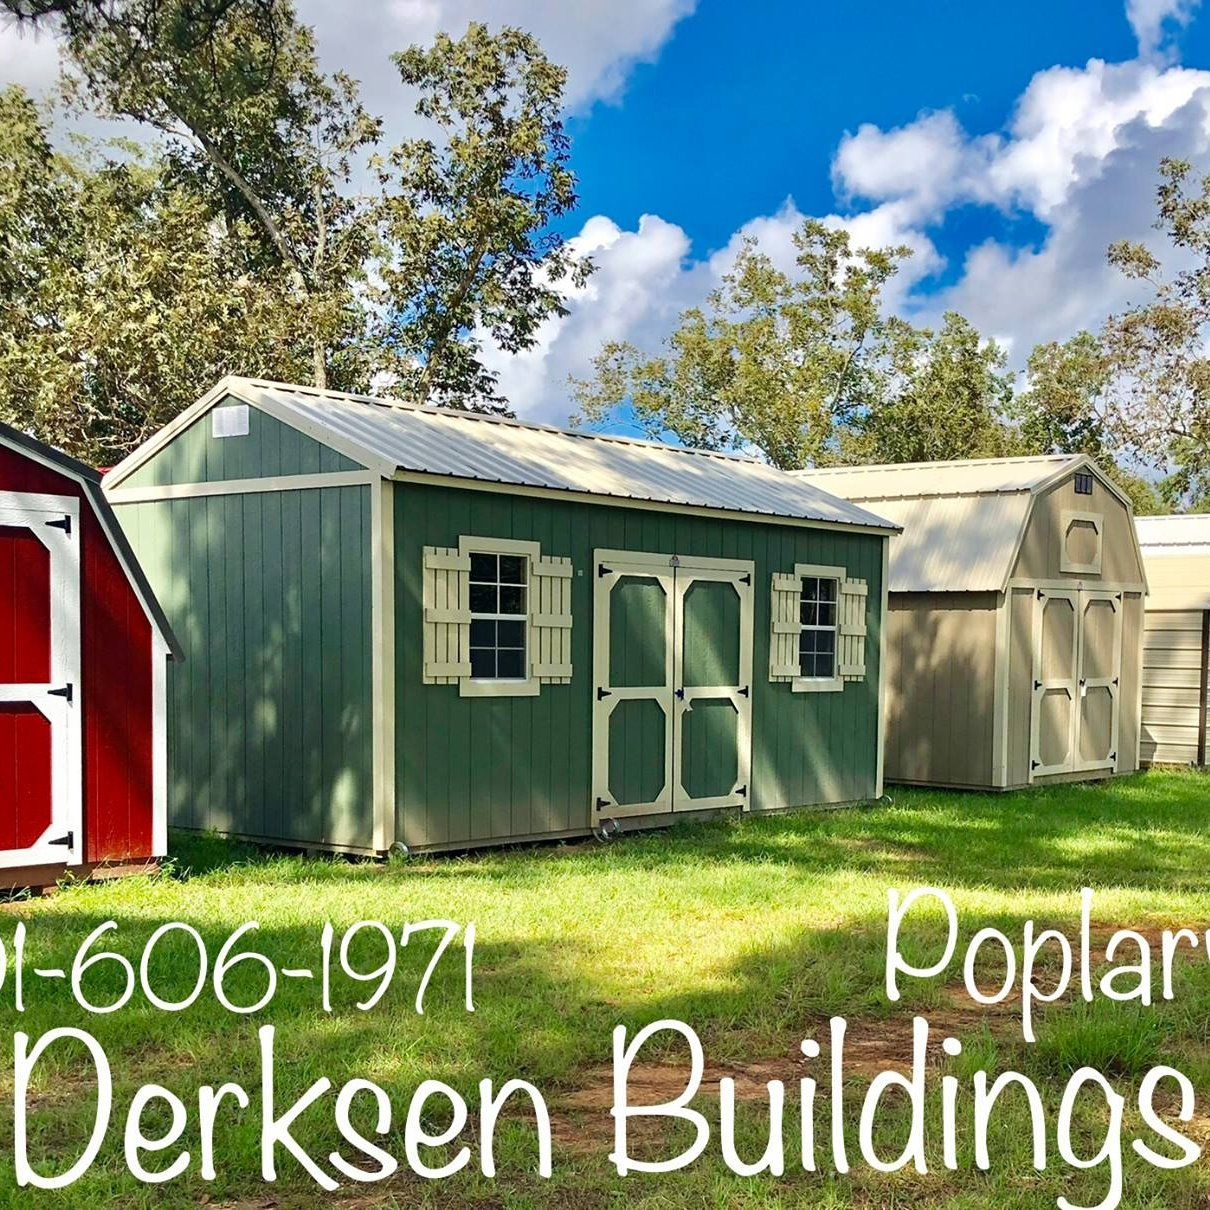 Poplarville Portable Buildings of Mississippi